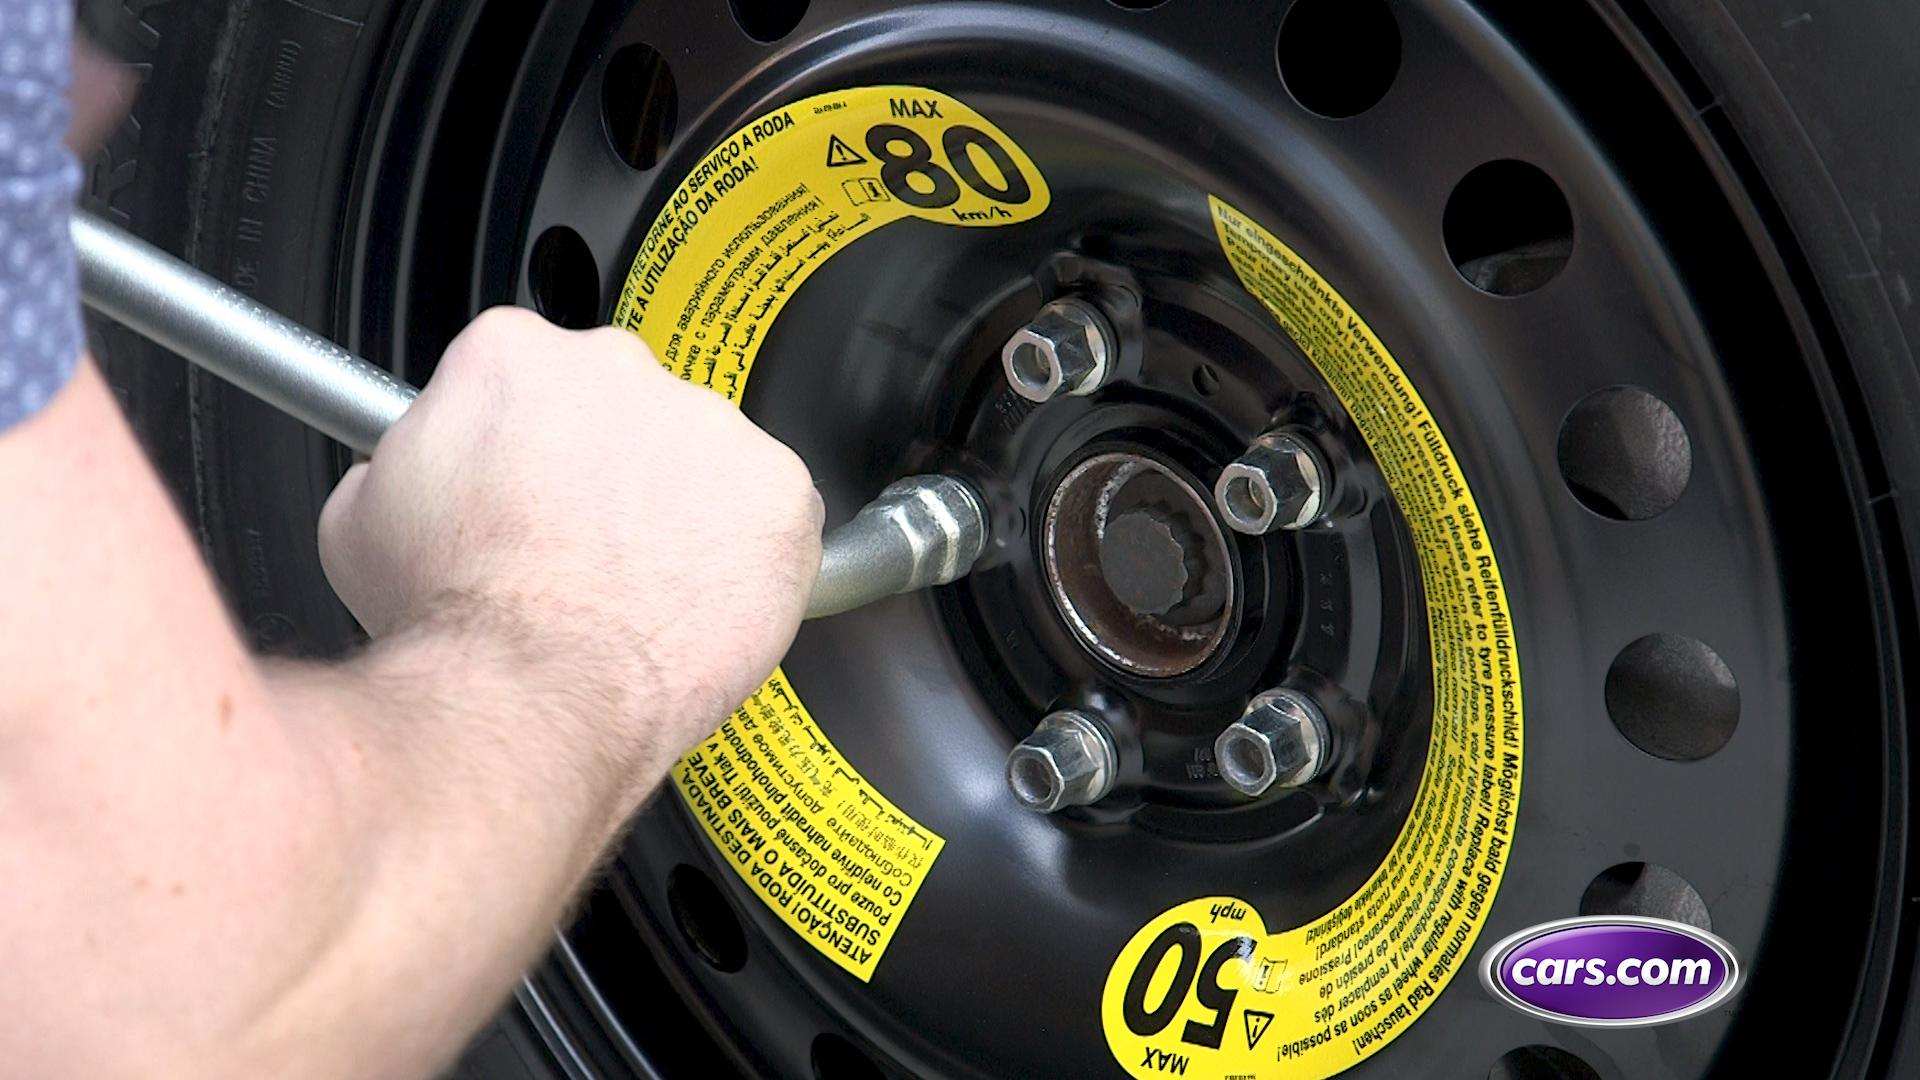 How to Change a Tire: A Step-by-Step Video Guide